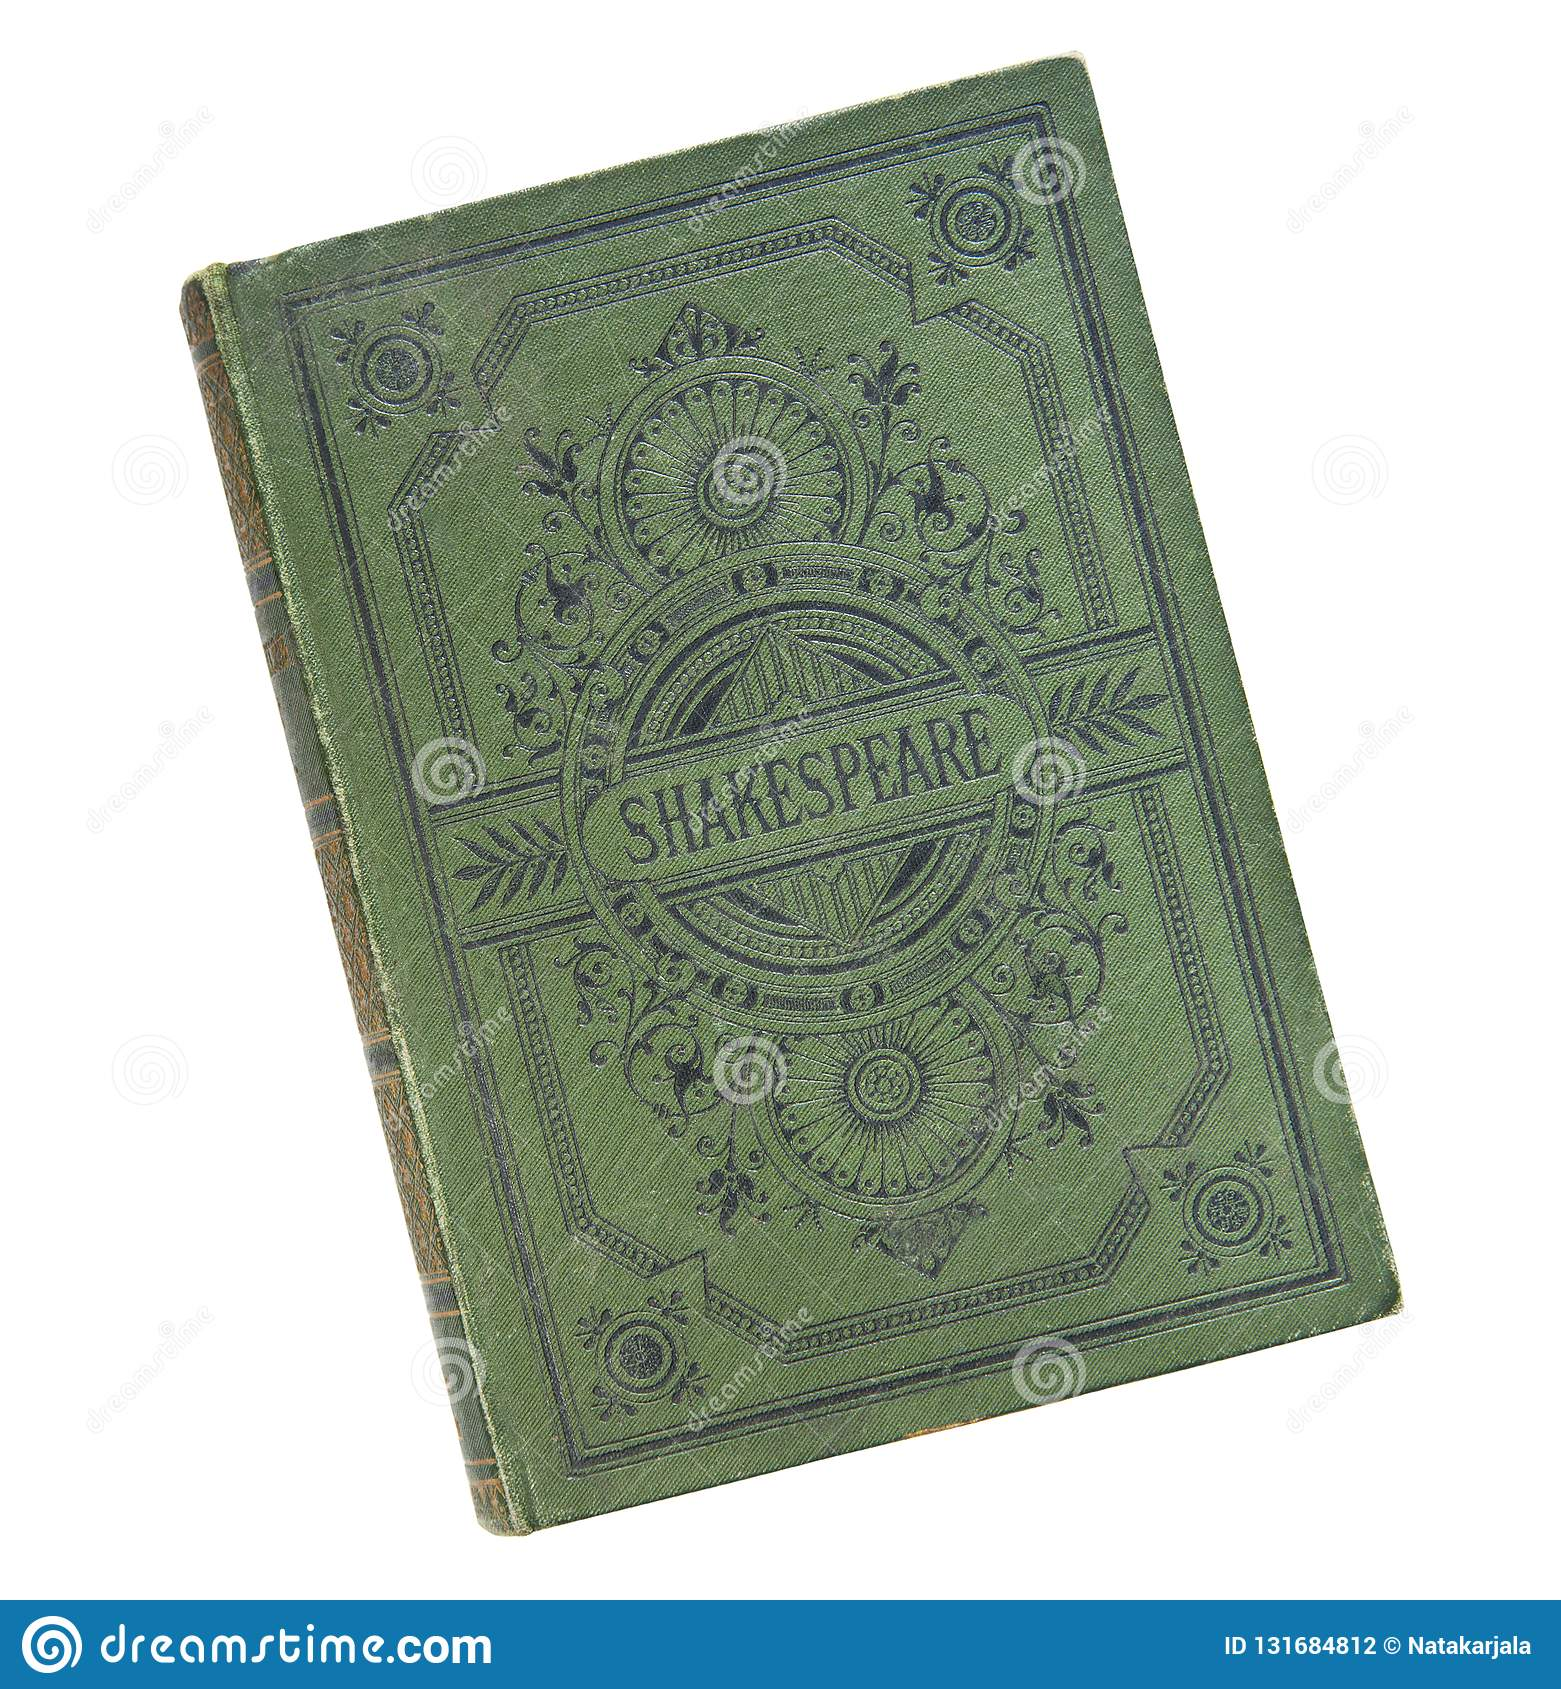 Old book vintage book cover isolated on white background. Old inscription Shakespeare